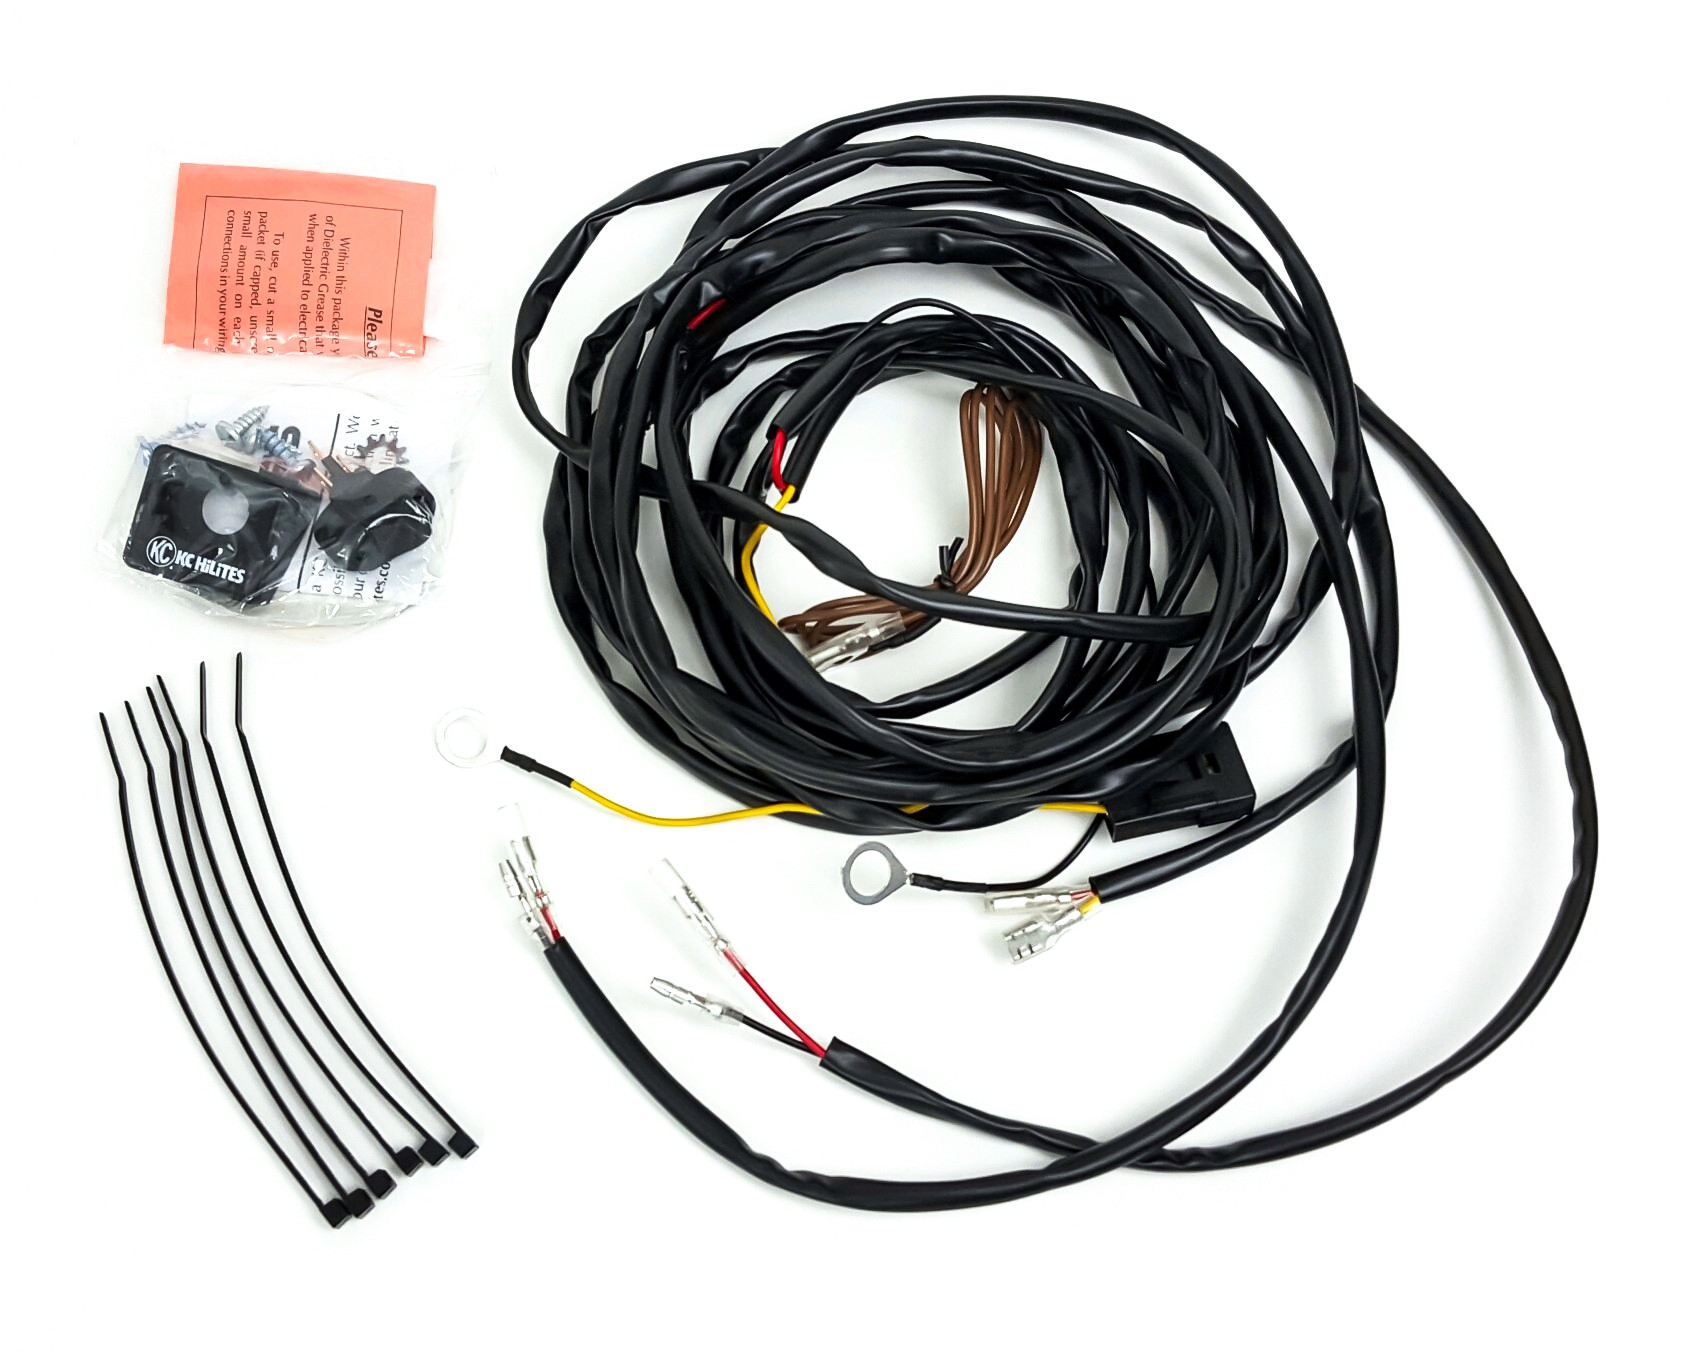 kc light wiring harness kc light wiring diagram kc hilites universal wiring harness for 2 cyclone led lights